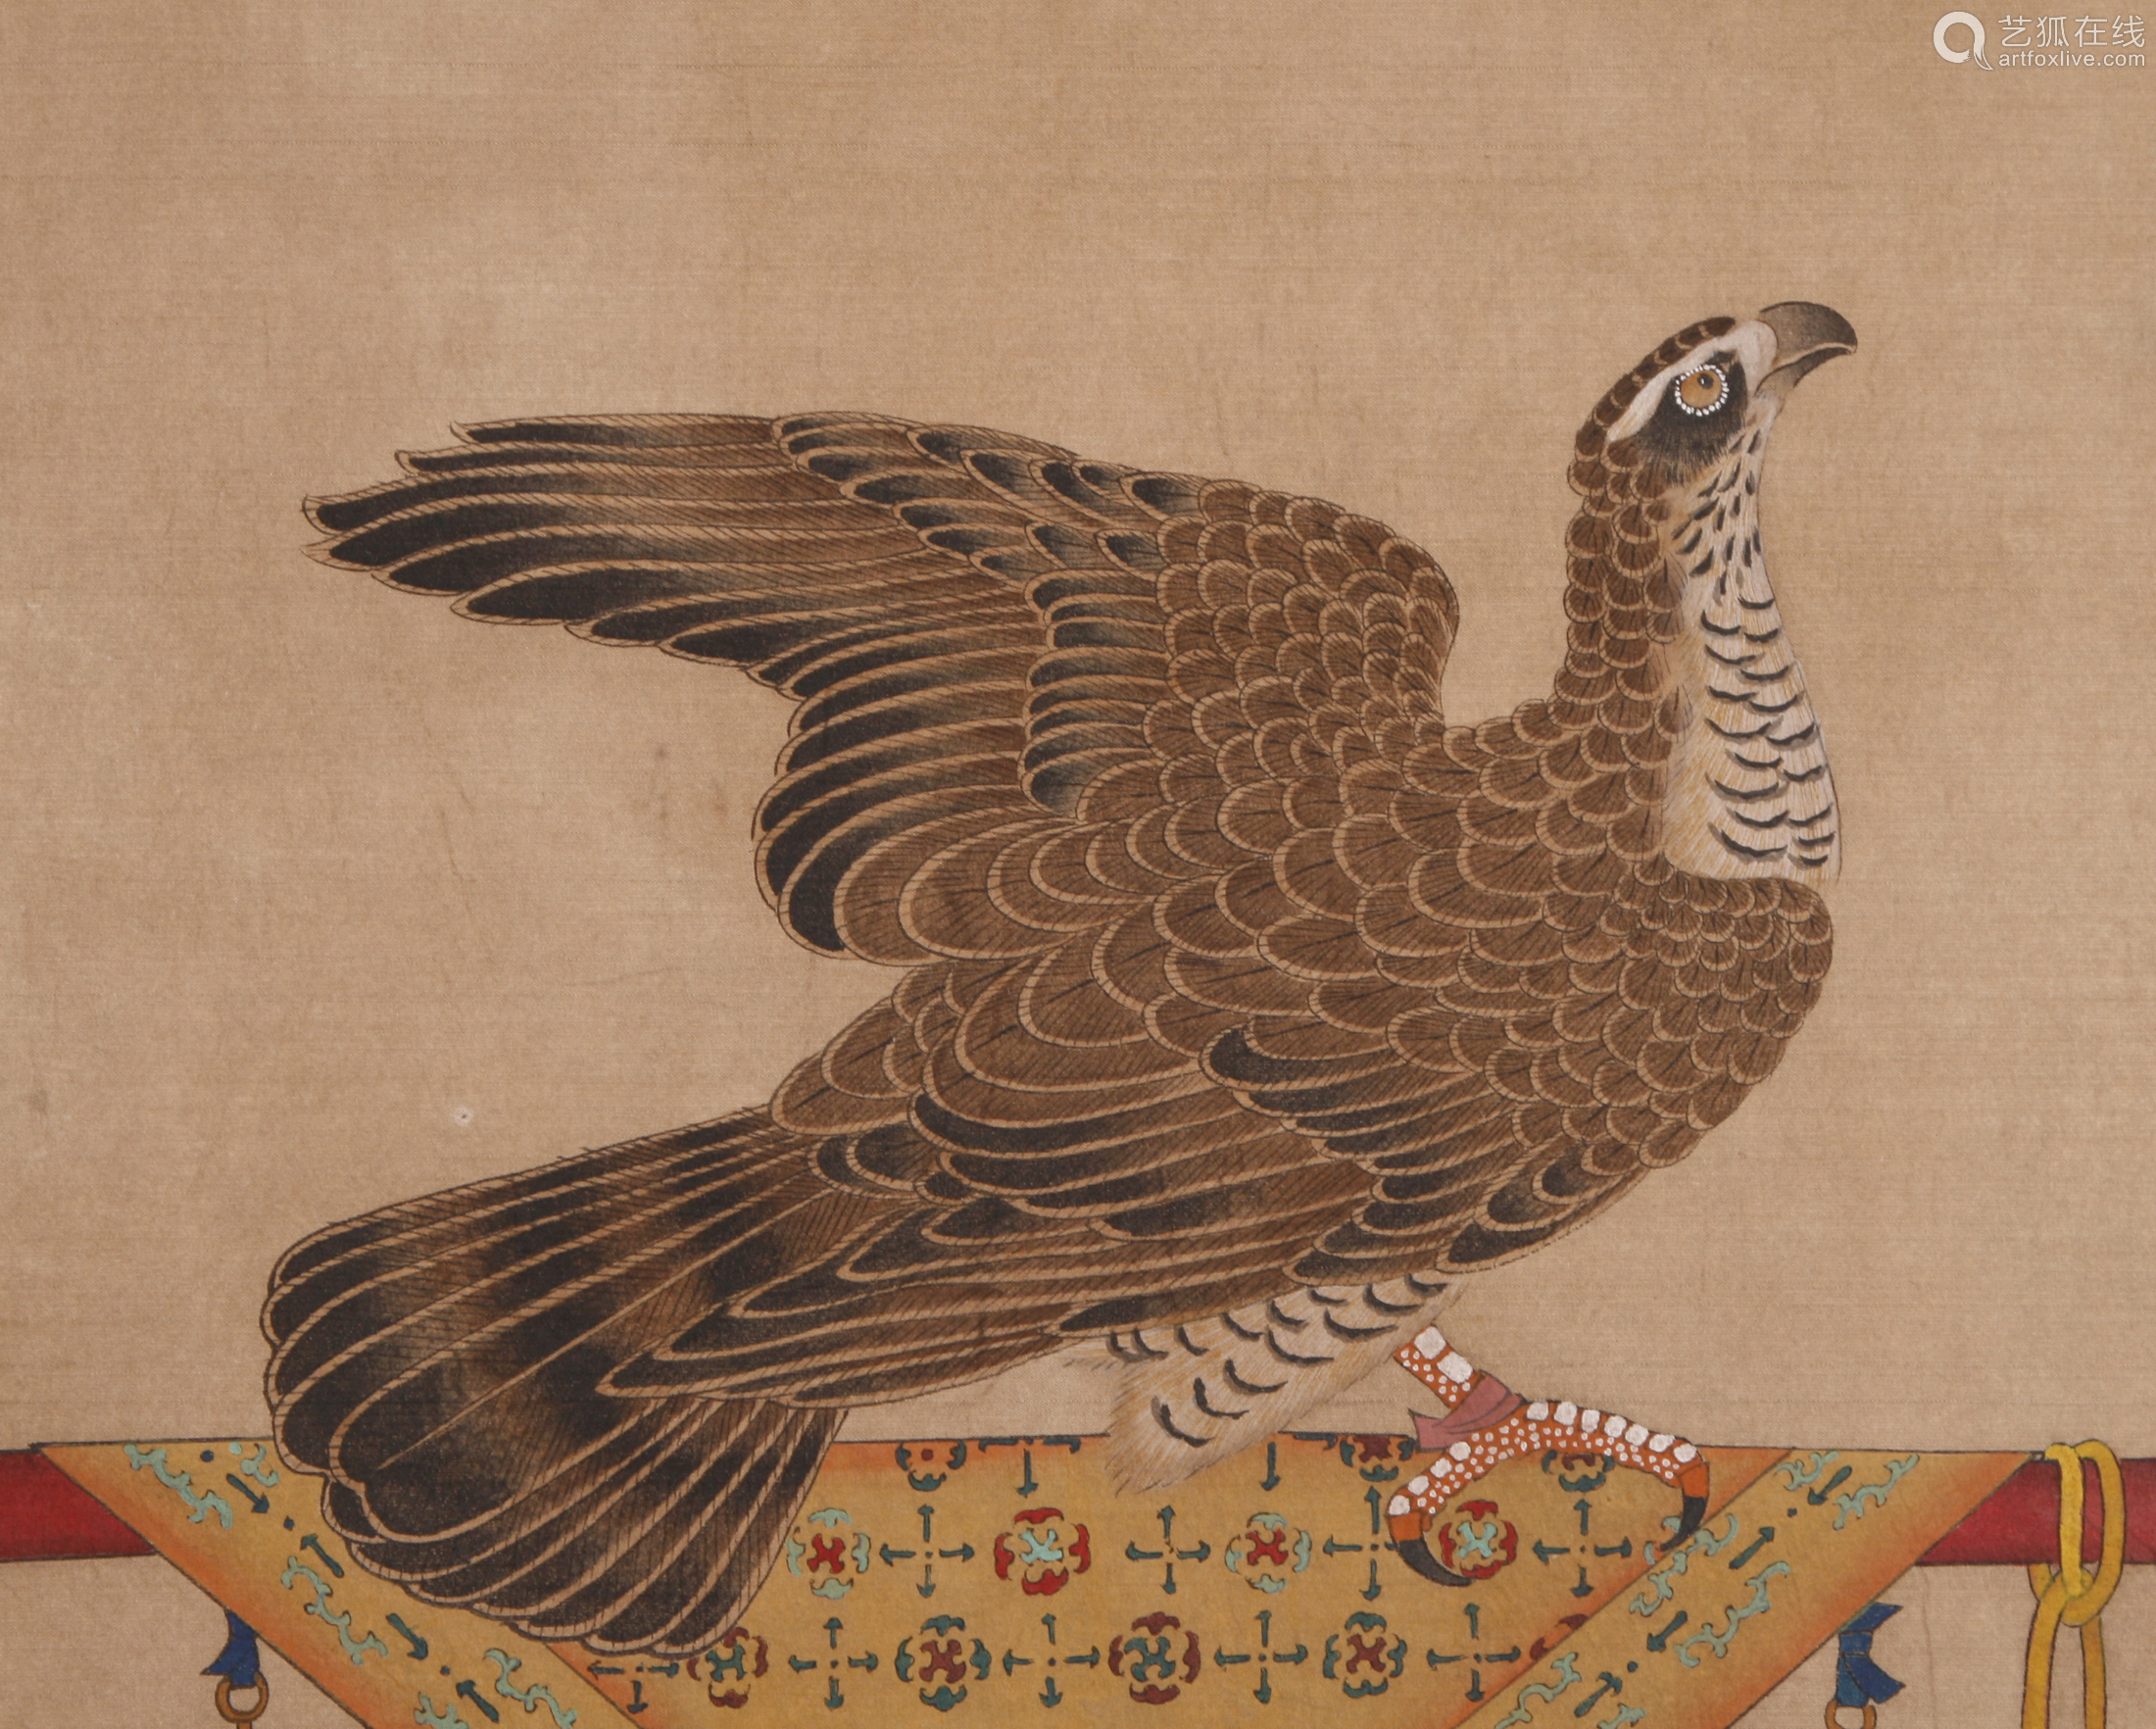 Emperor Huizong of Song - Painting of Imperial Eagle